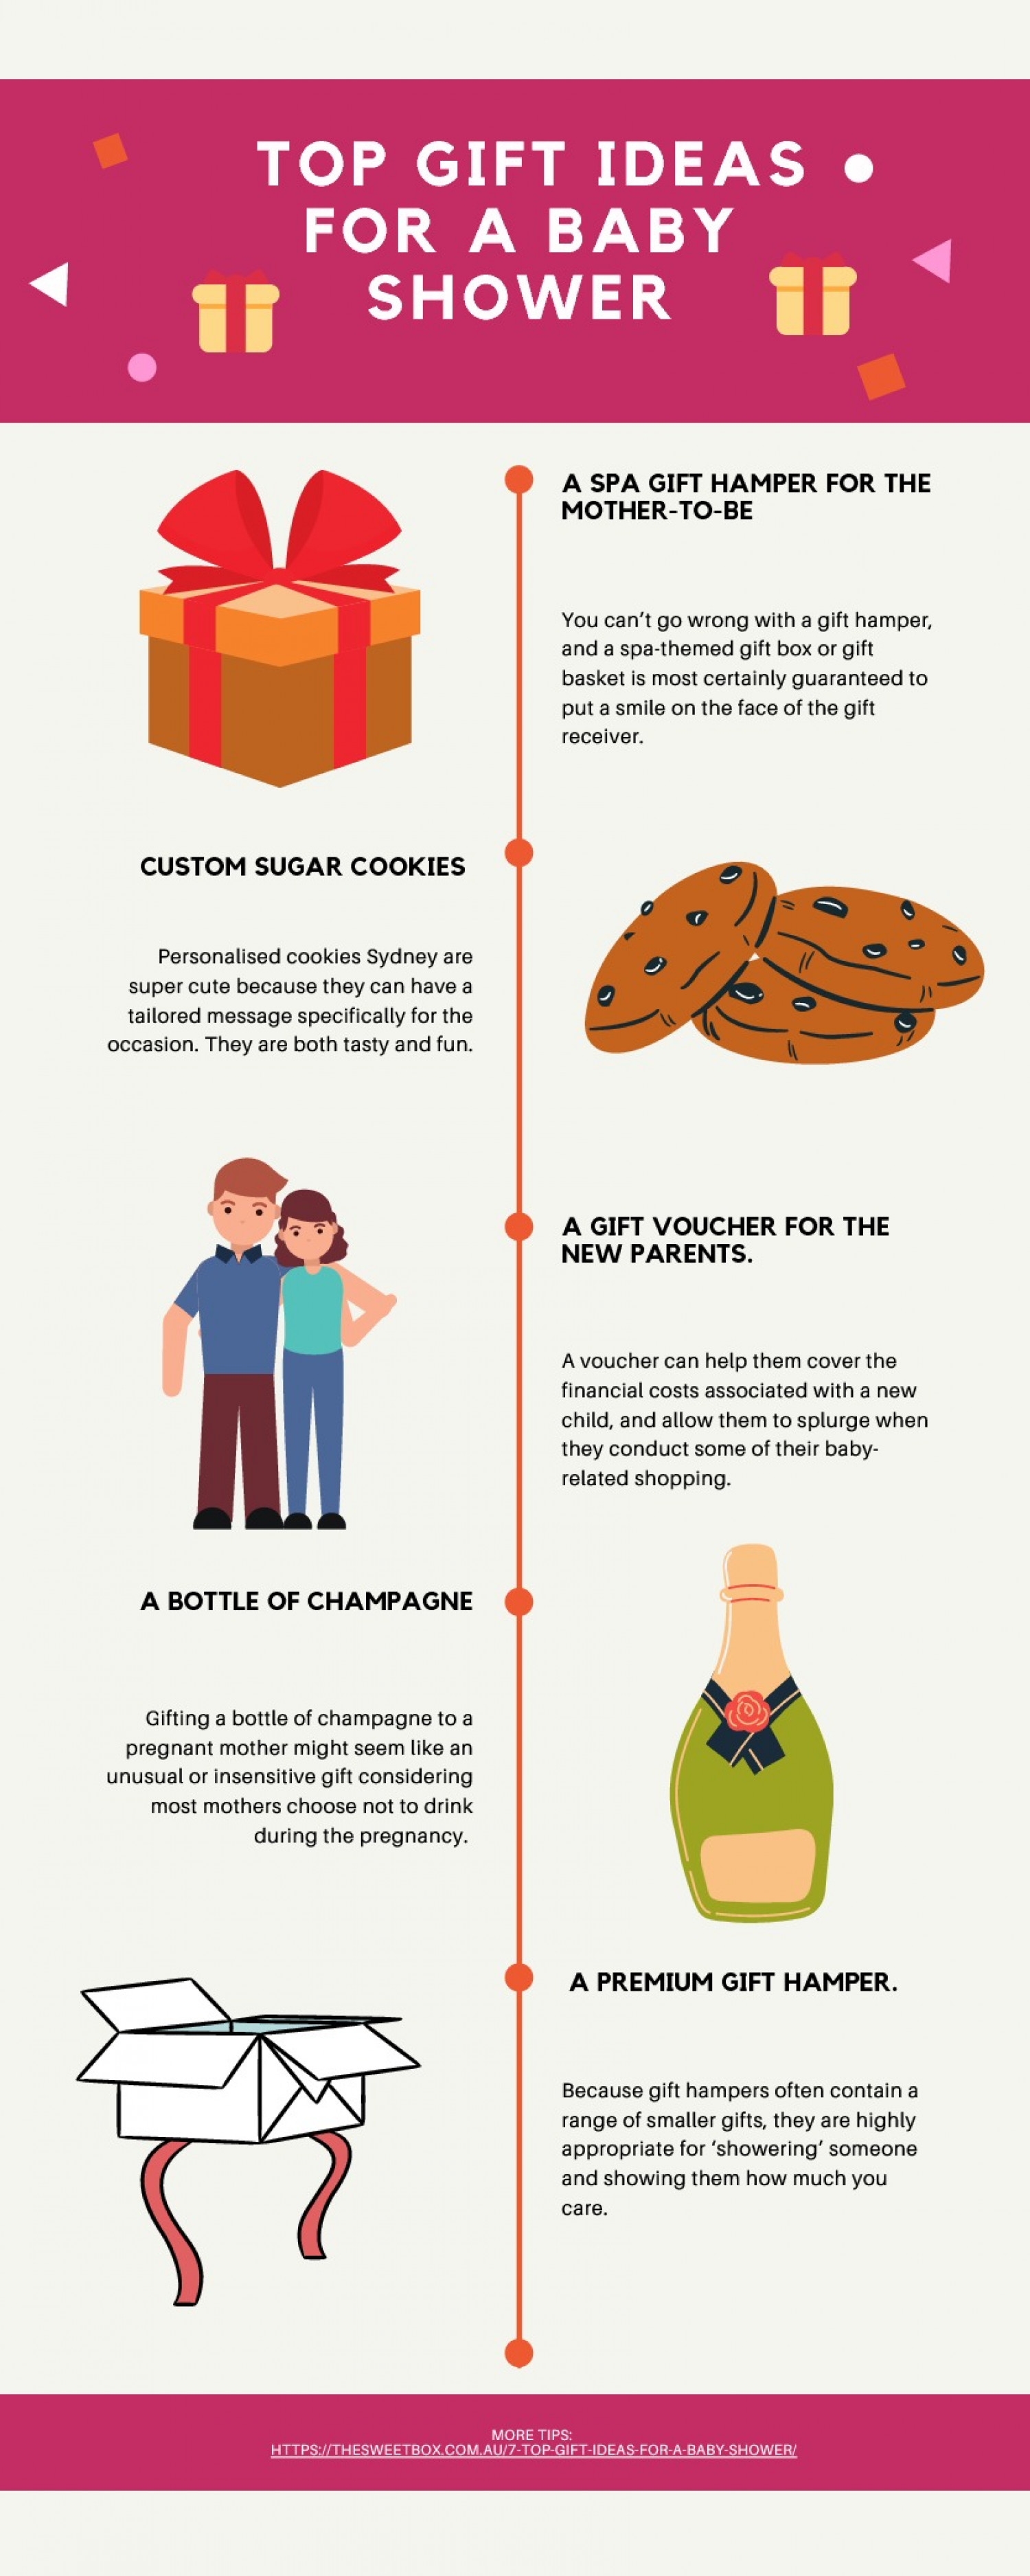 Top Gift Ideas For A Baby Shower - Sweet Box Infographic